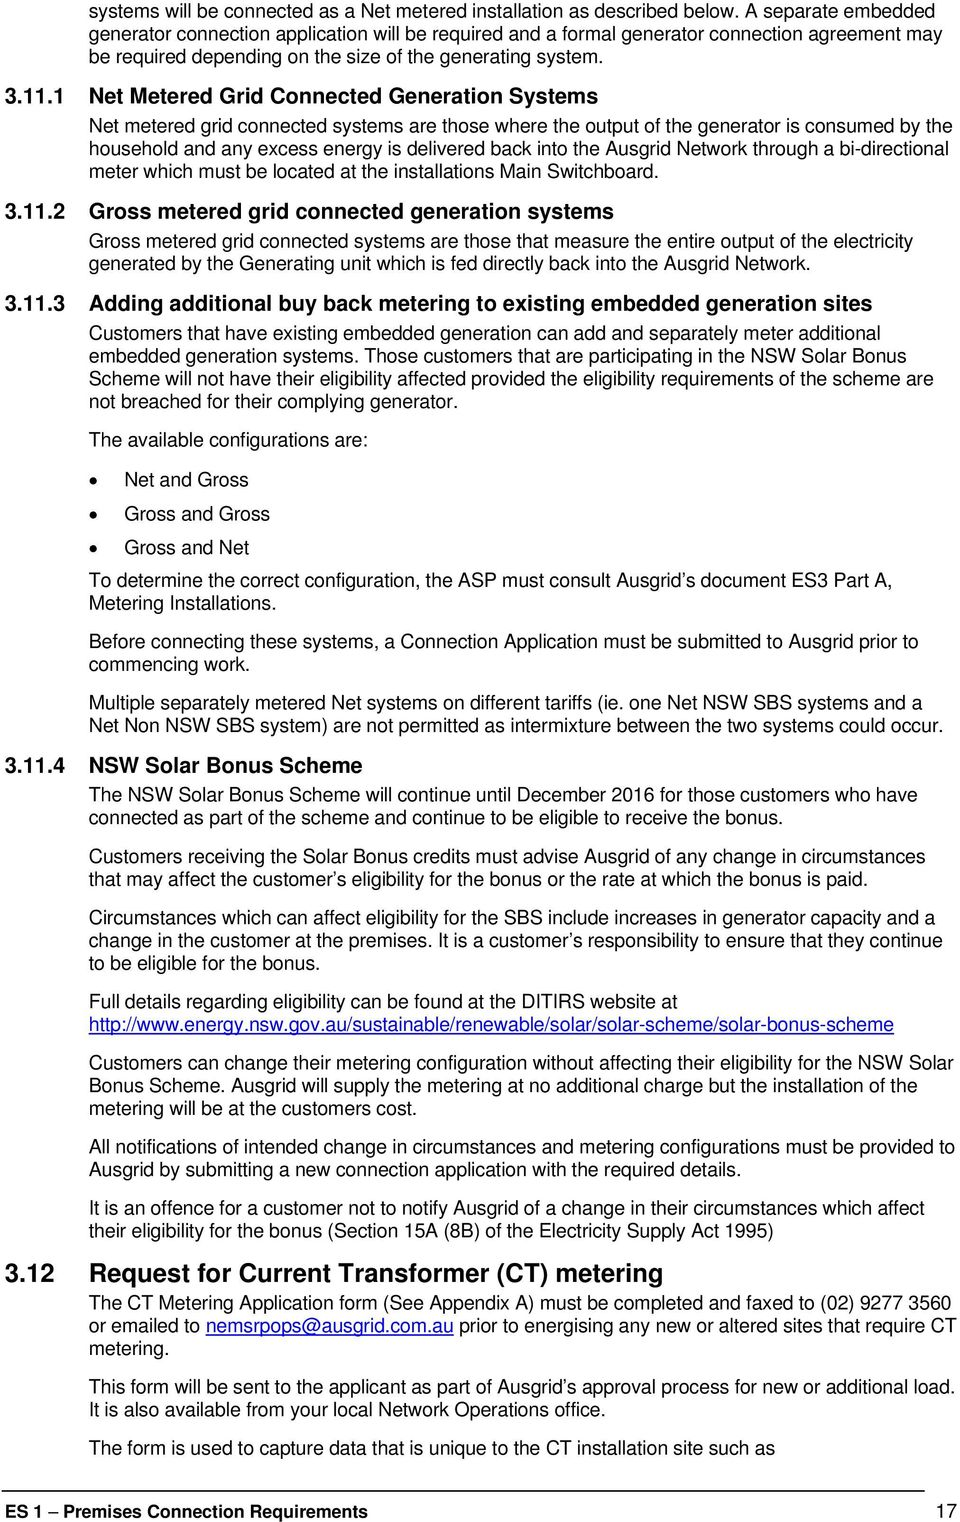 ELECTRICITY SUPPLY ACT 1995 NSW EBOOK